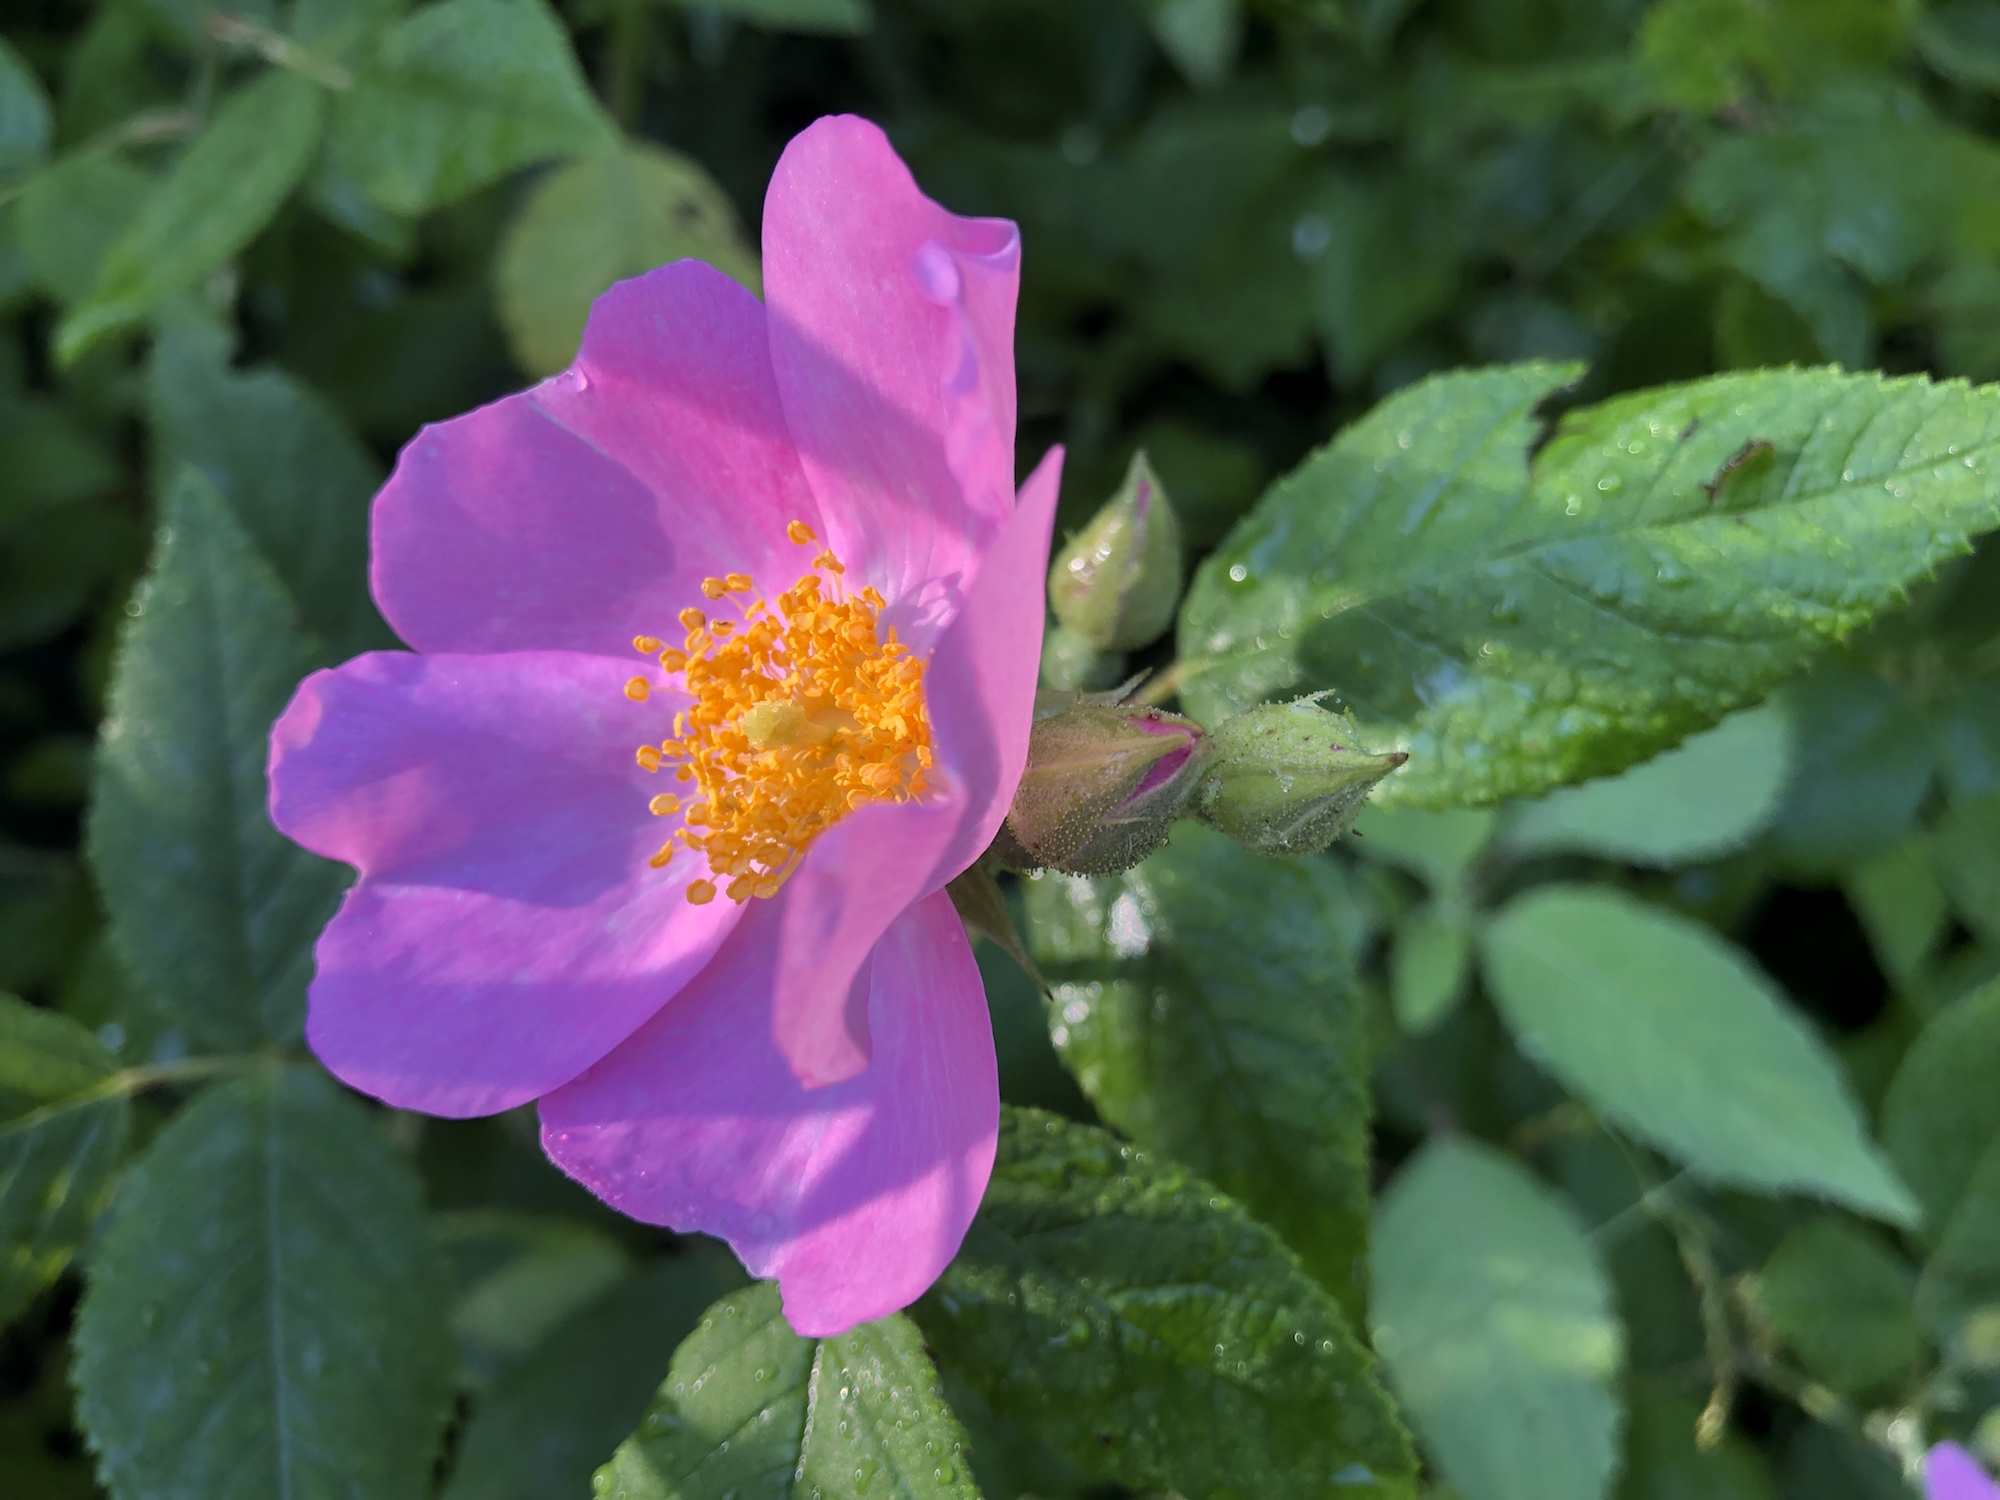 Prairie Rose near Council Ring in the Oak Savanna on July 10, 2019.